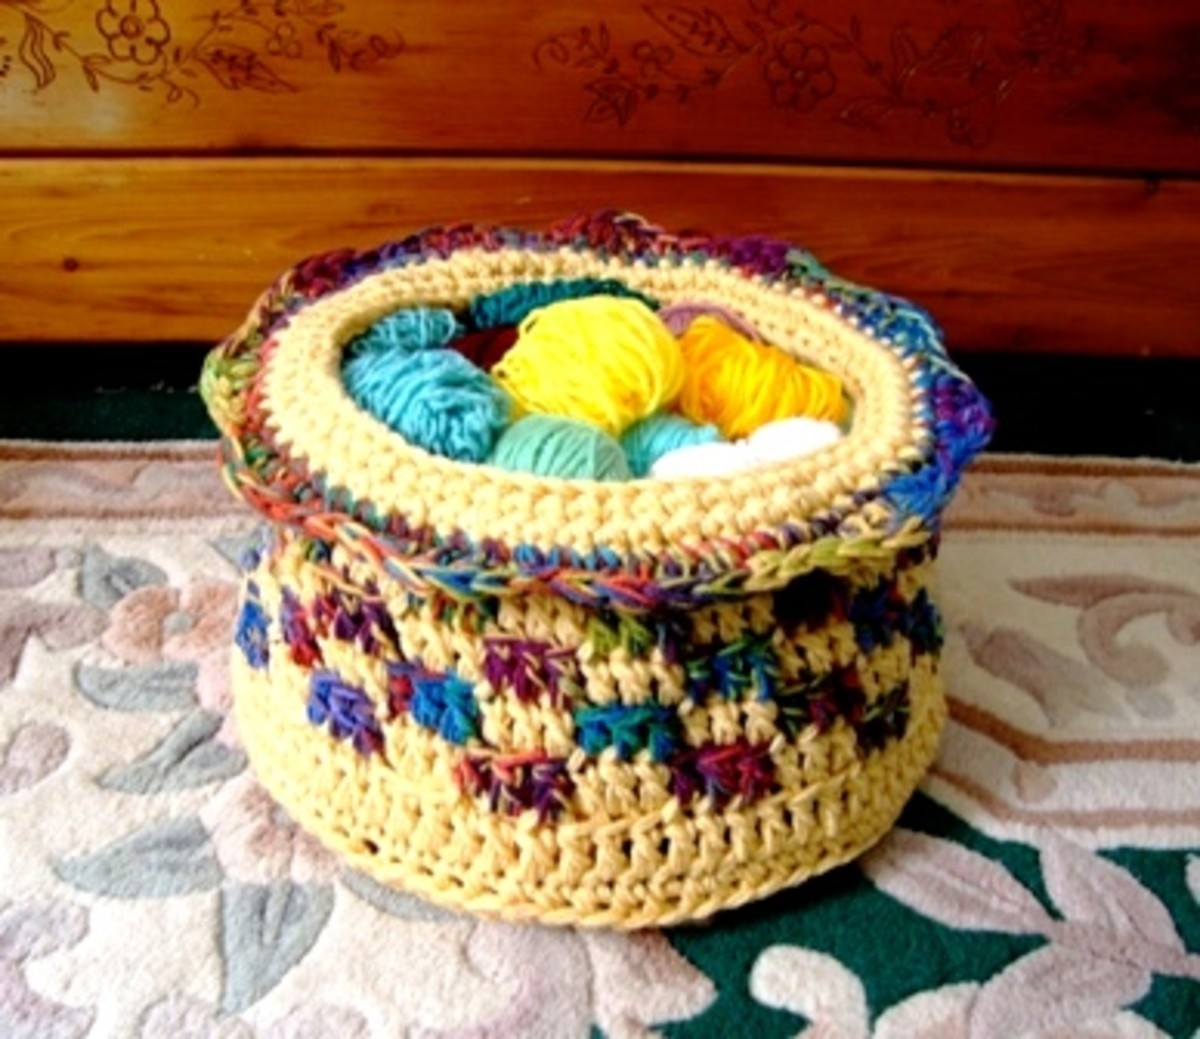 Crocheted Yarn Basket